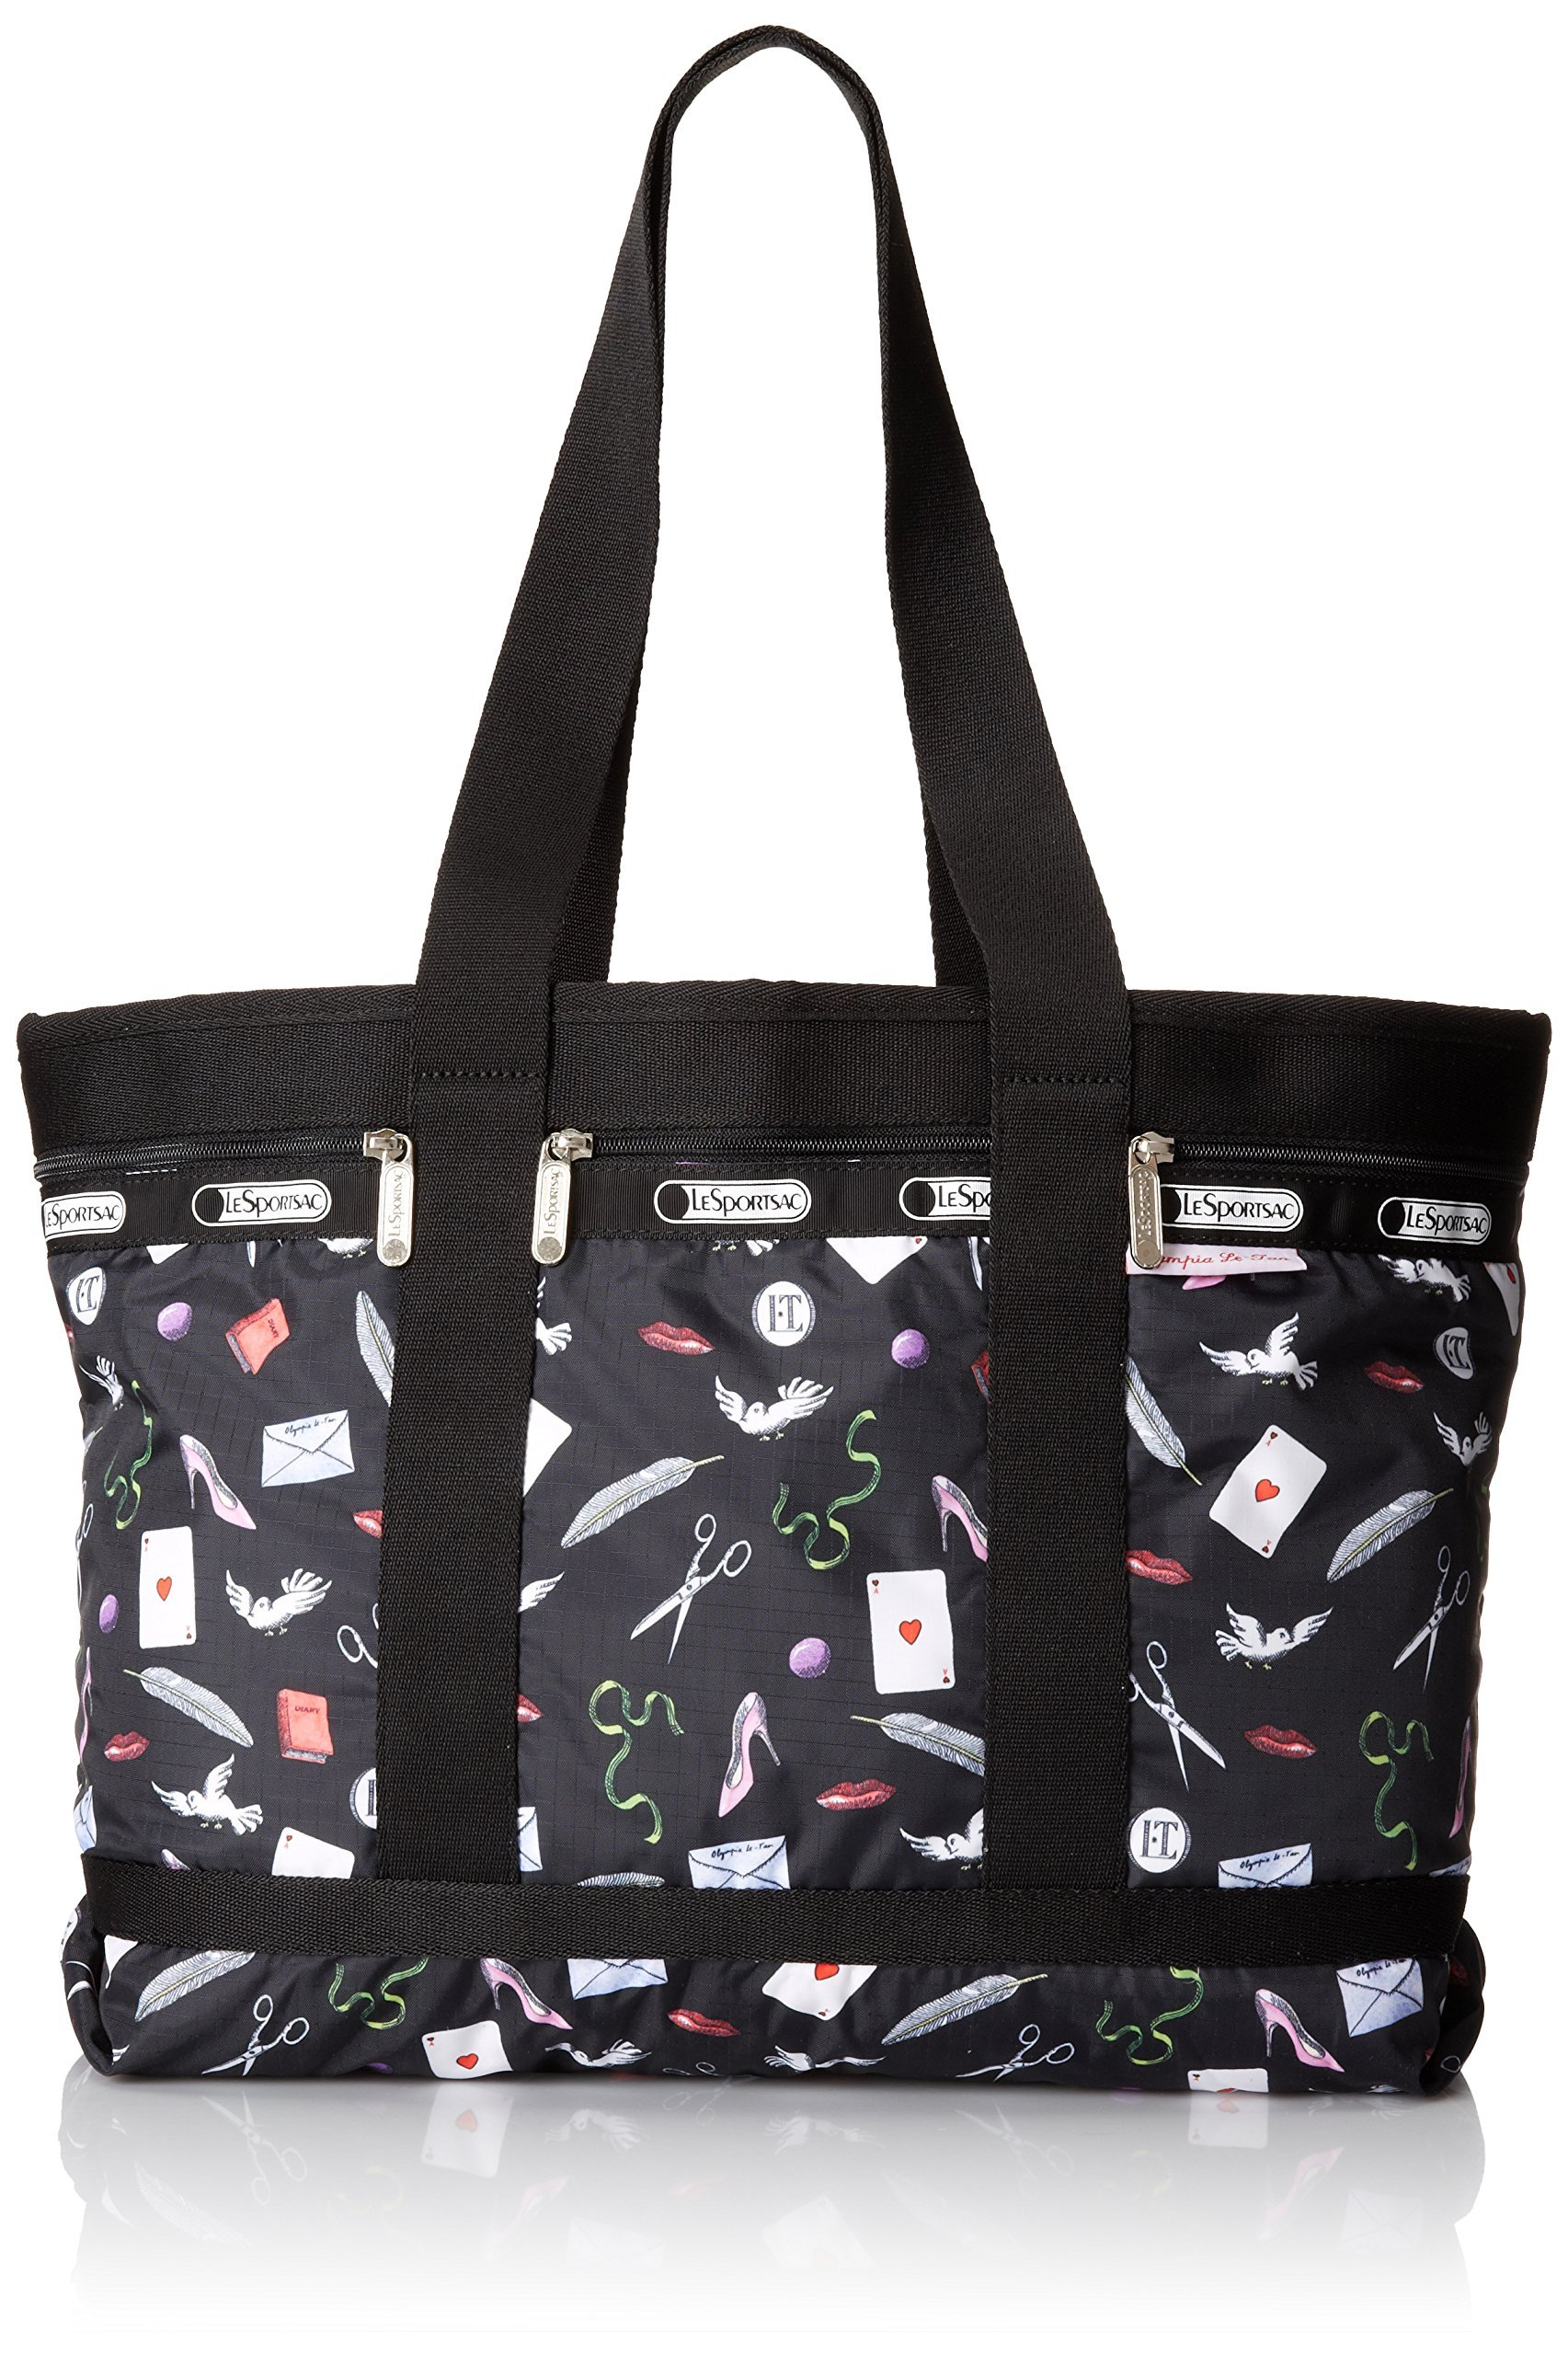 LeSportsac Medium Travel Tote, Love Letters, One Size